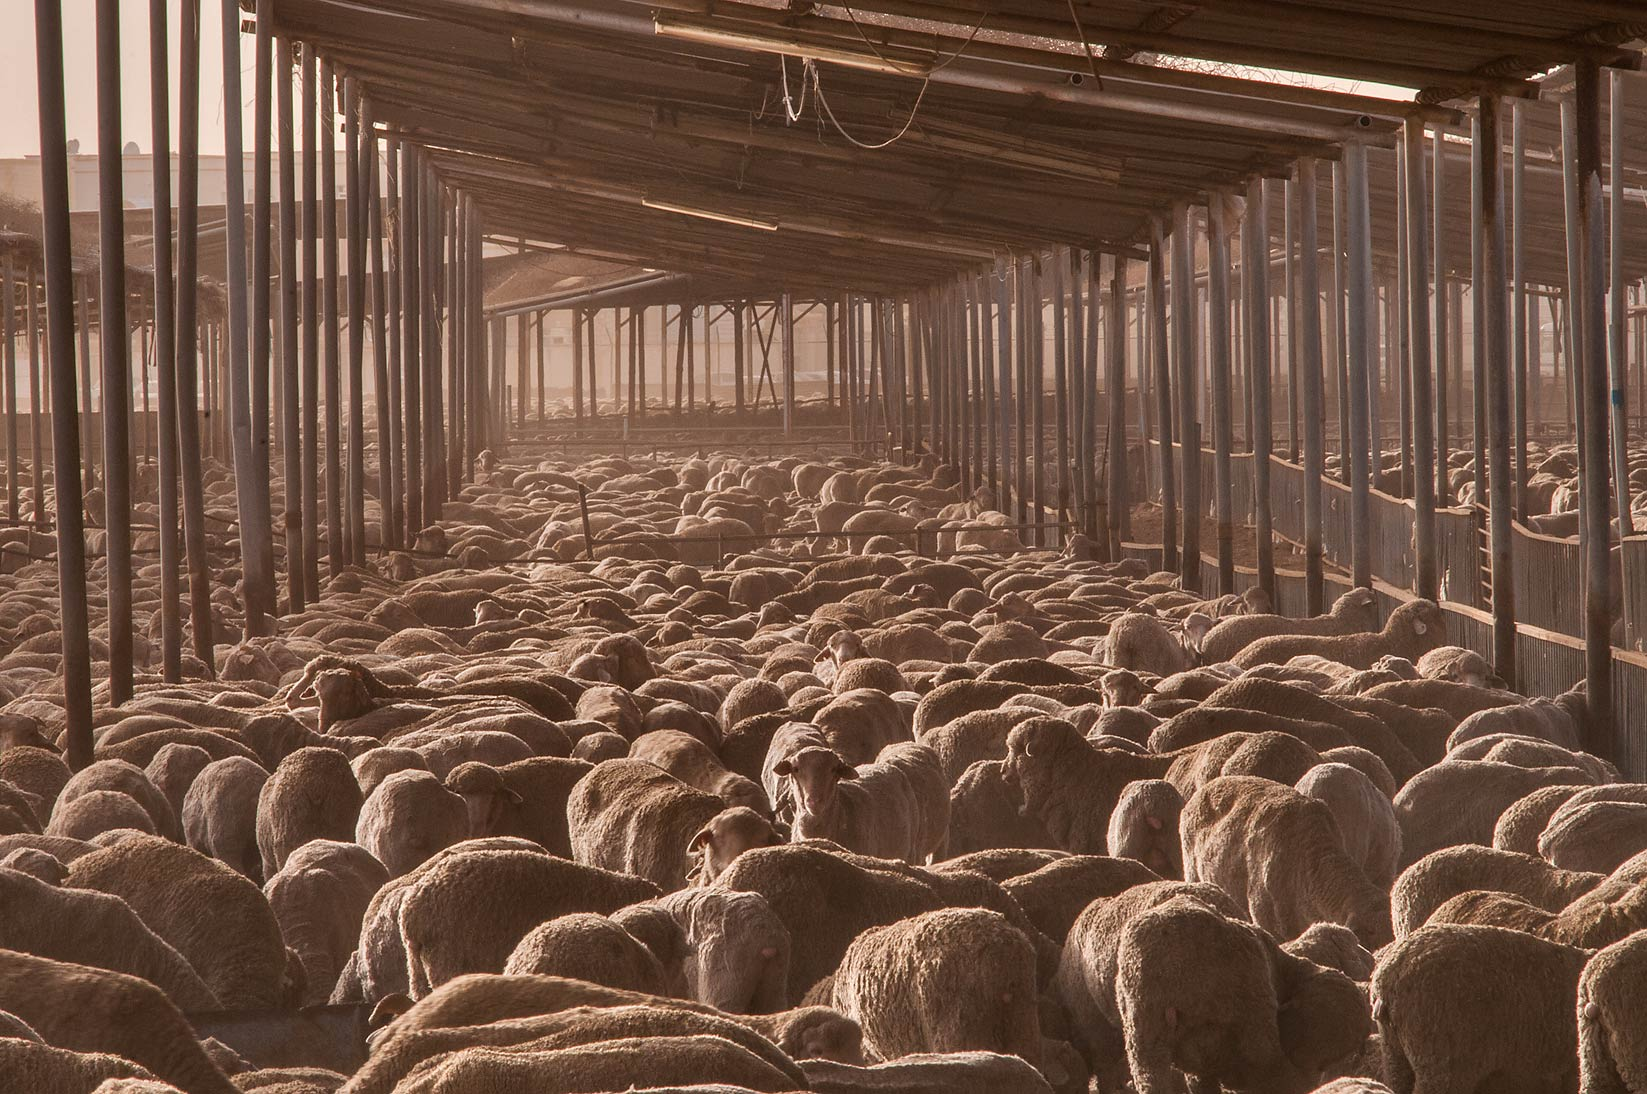 Australian sheep crowding in a feedlot of...in Abu Hamour. Doha, Qatar